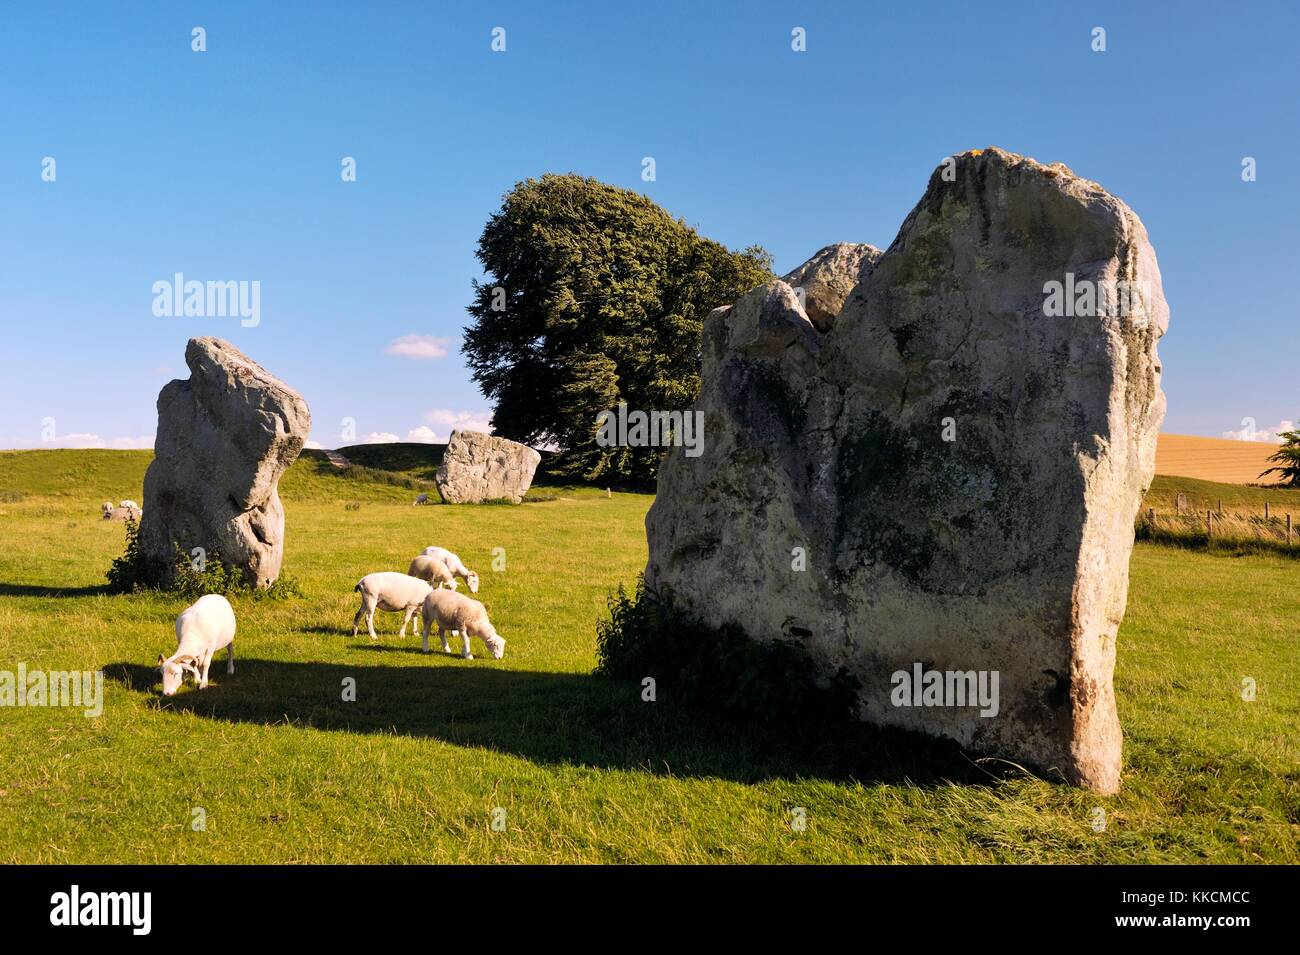 Avebury Neolithic henge and stone circles, Wiltshire, England. 5600 years old. Megaliths in the SE quadrant - Stock Image